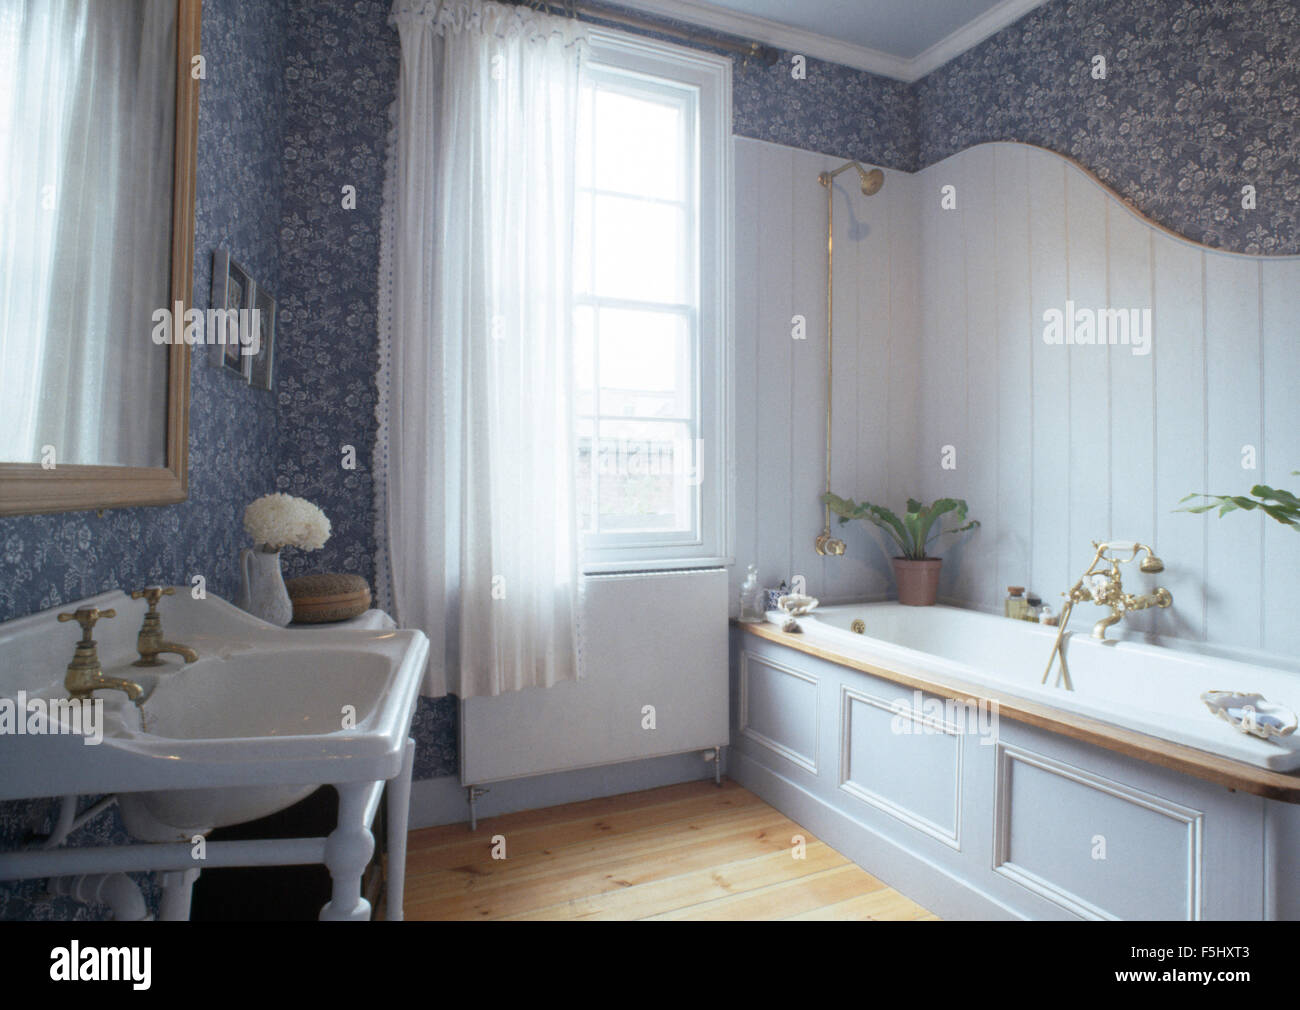 Bathroom Tongue And Groove Cladding. White Tonguegroove Panelling Above Bath In Seventies Bathroom With Blue Floral Wallpaper Stock